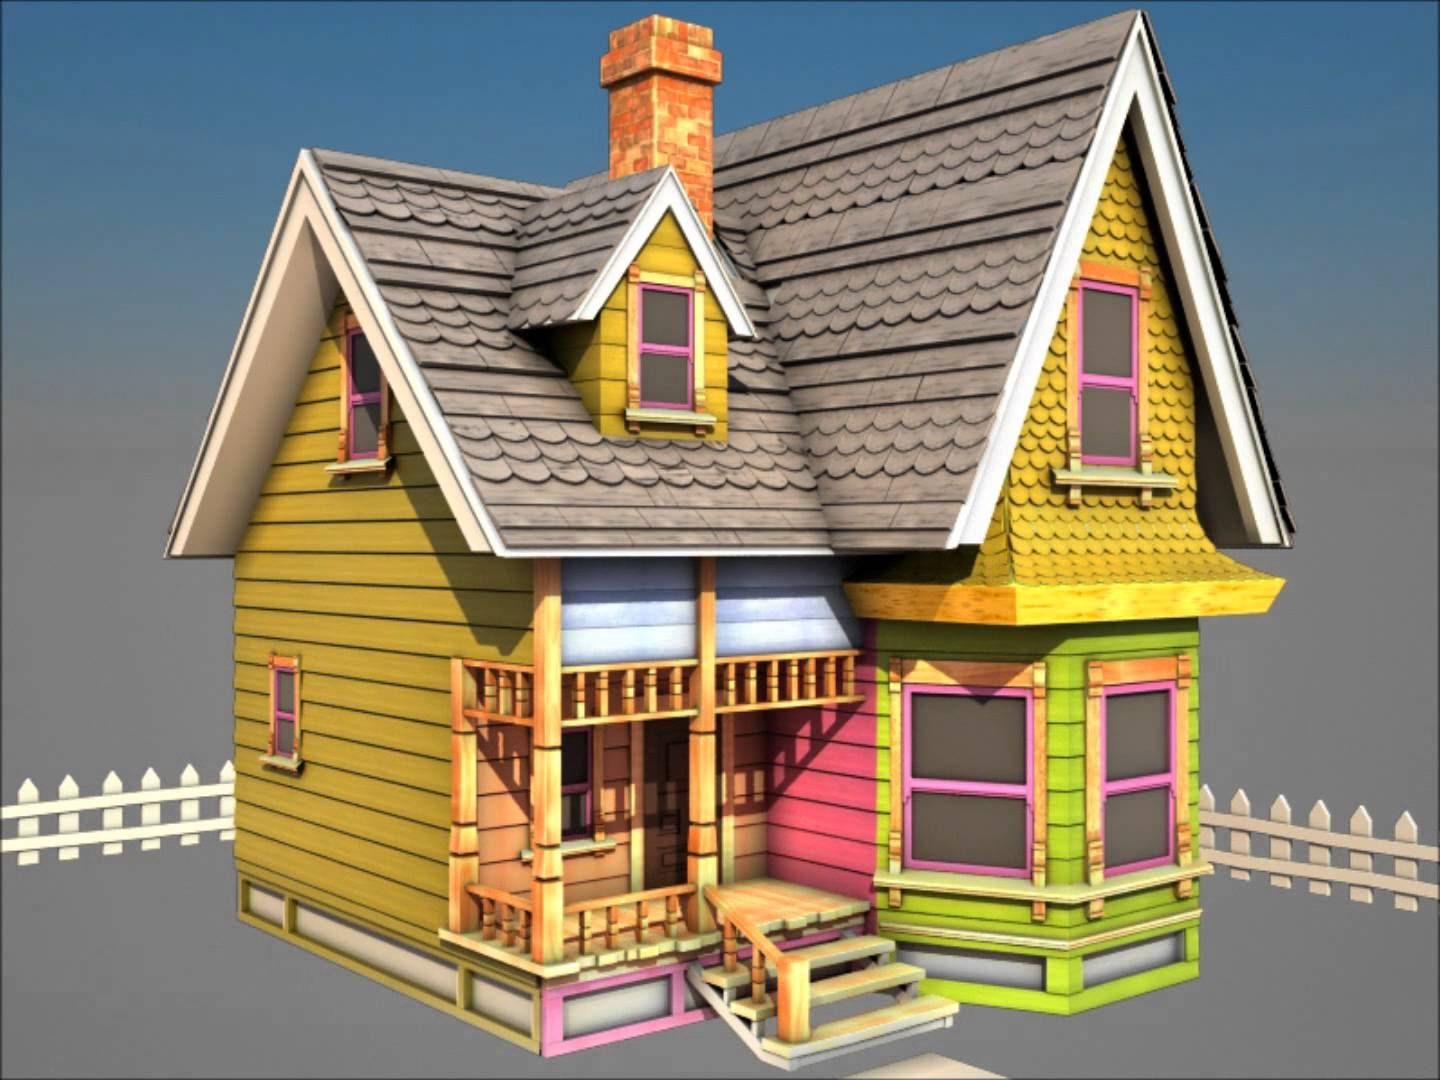 Pixar Up House of Carl Fredrickson Up house